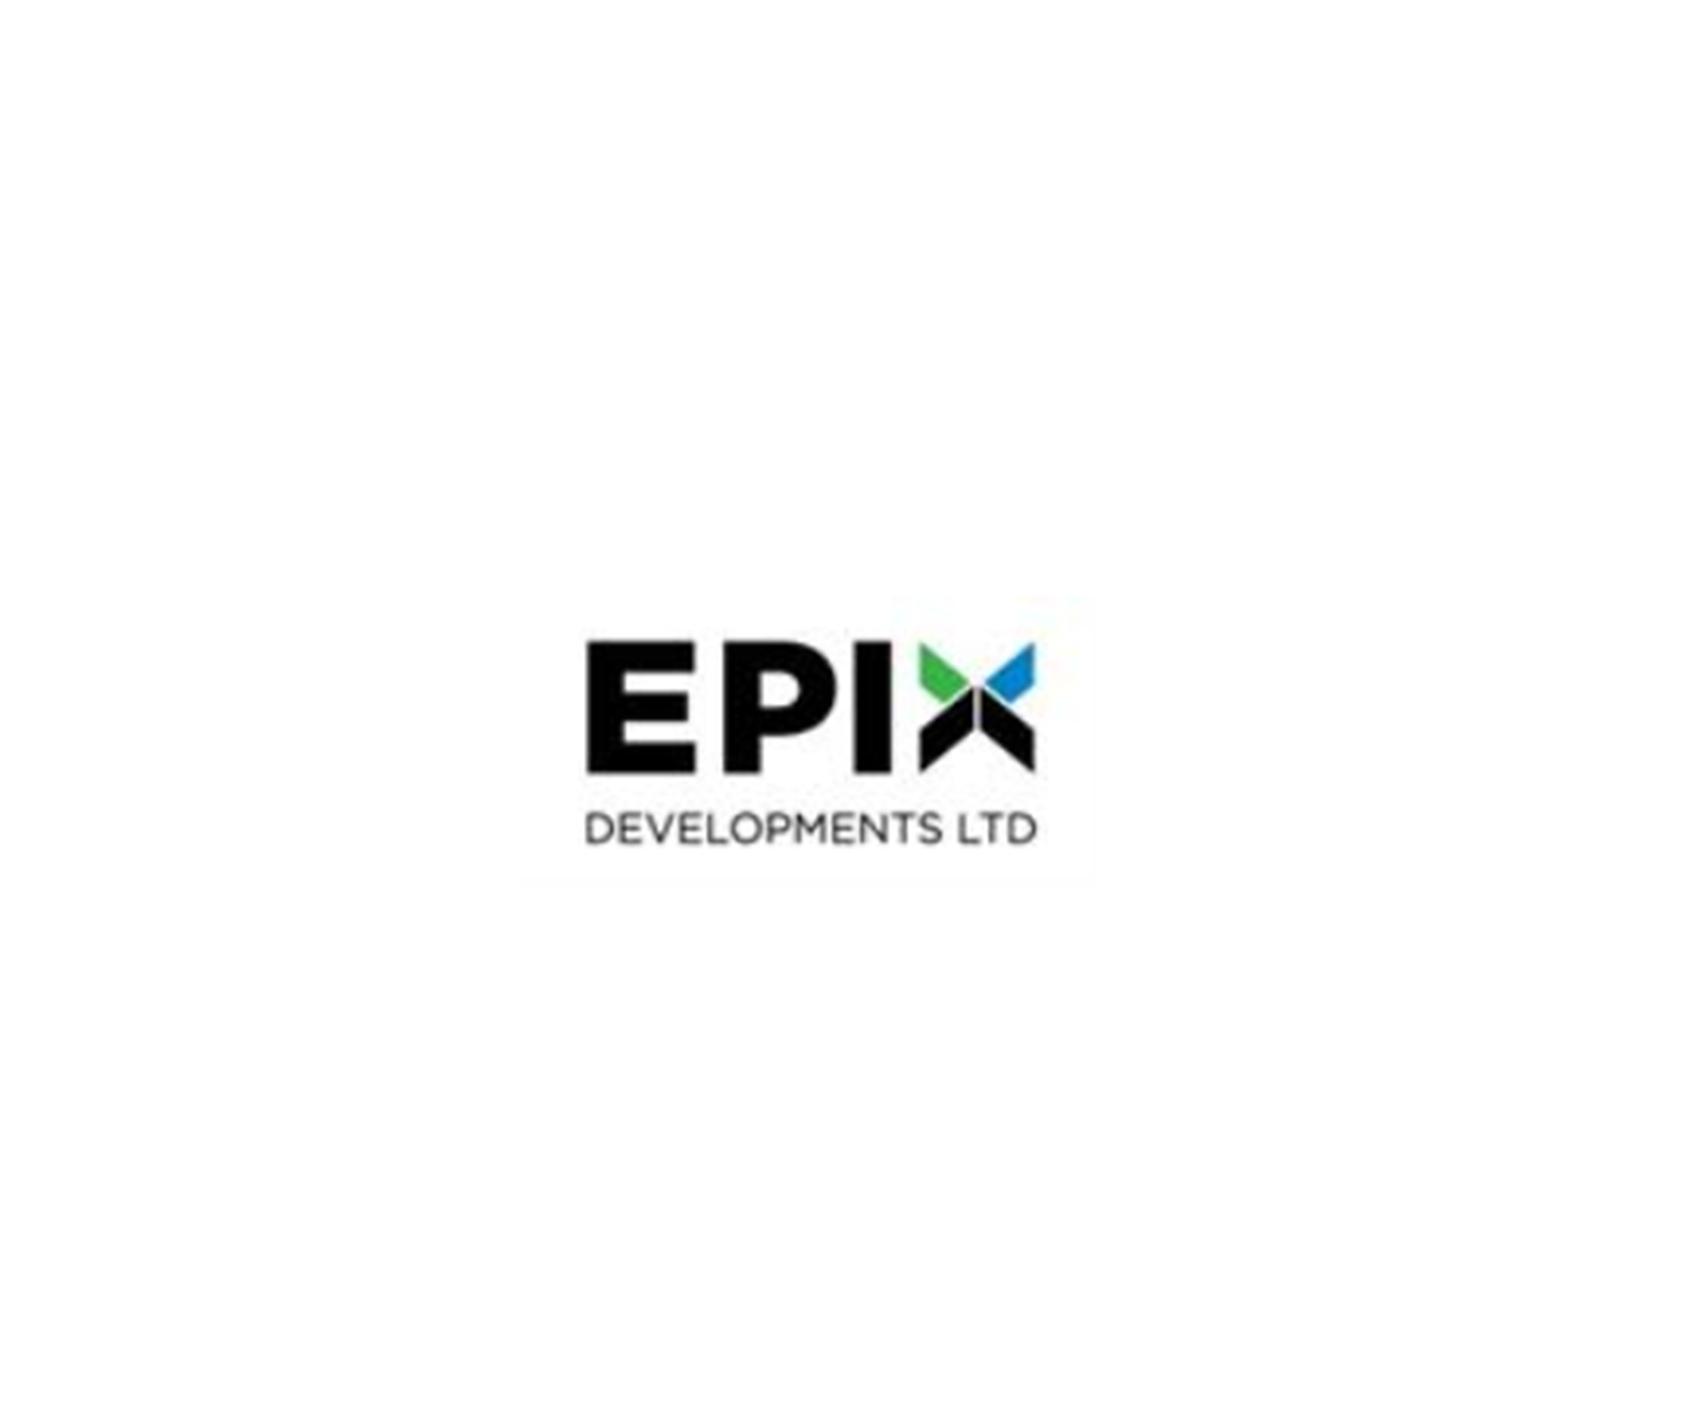 Epix Developments ltd logo